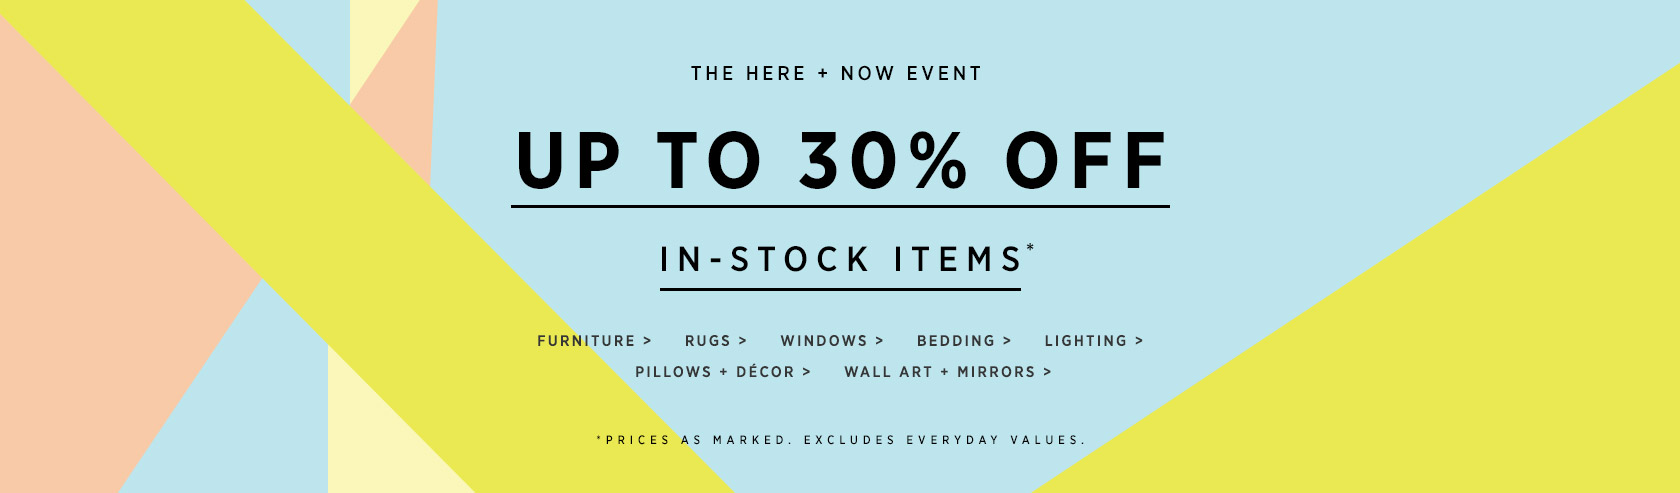 Up To 30% Off In-Stock Items